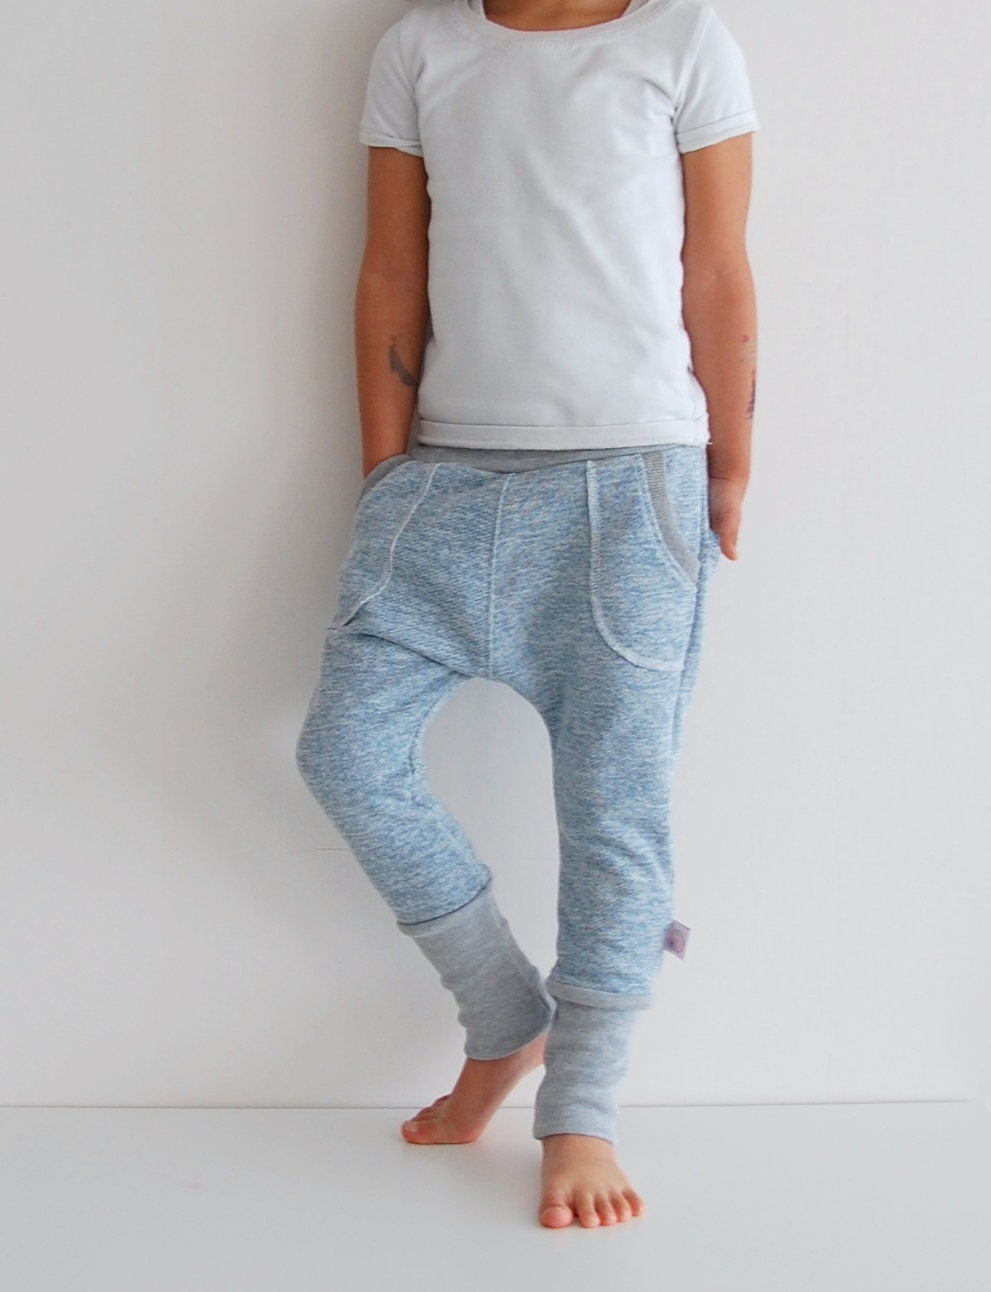 Find great deals on eBay for harem pants boys. Shop with confidence.